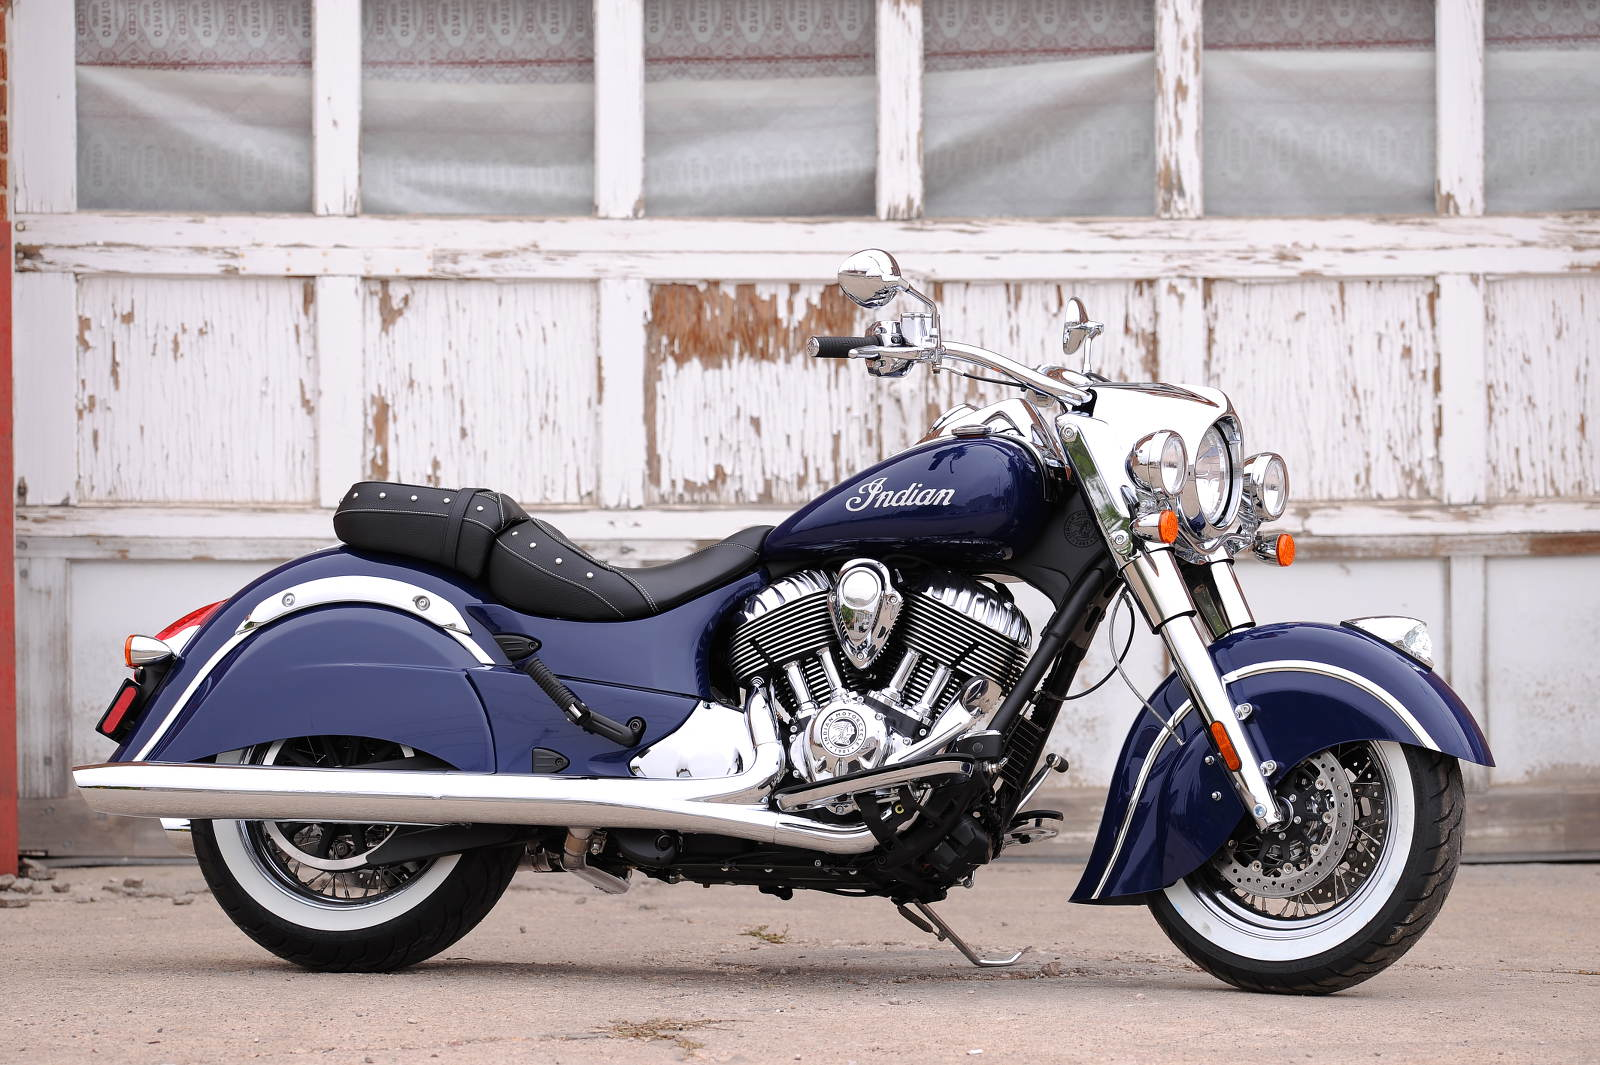 2013 Indian Chief Classic #6